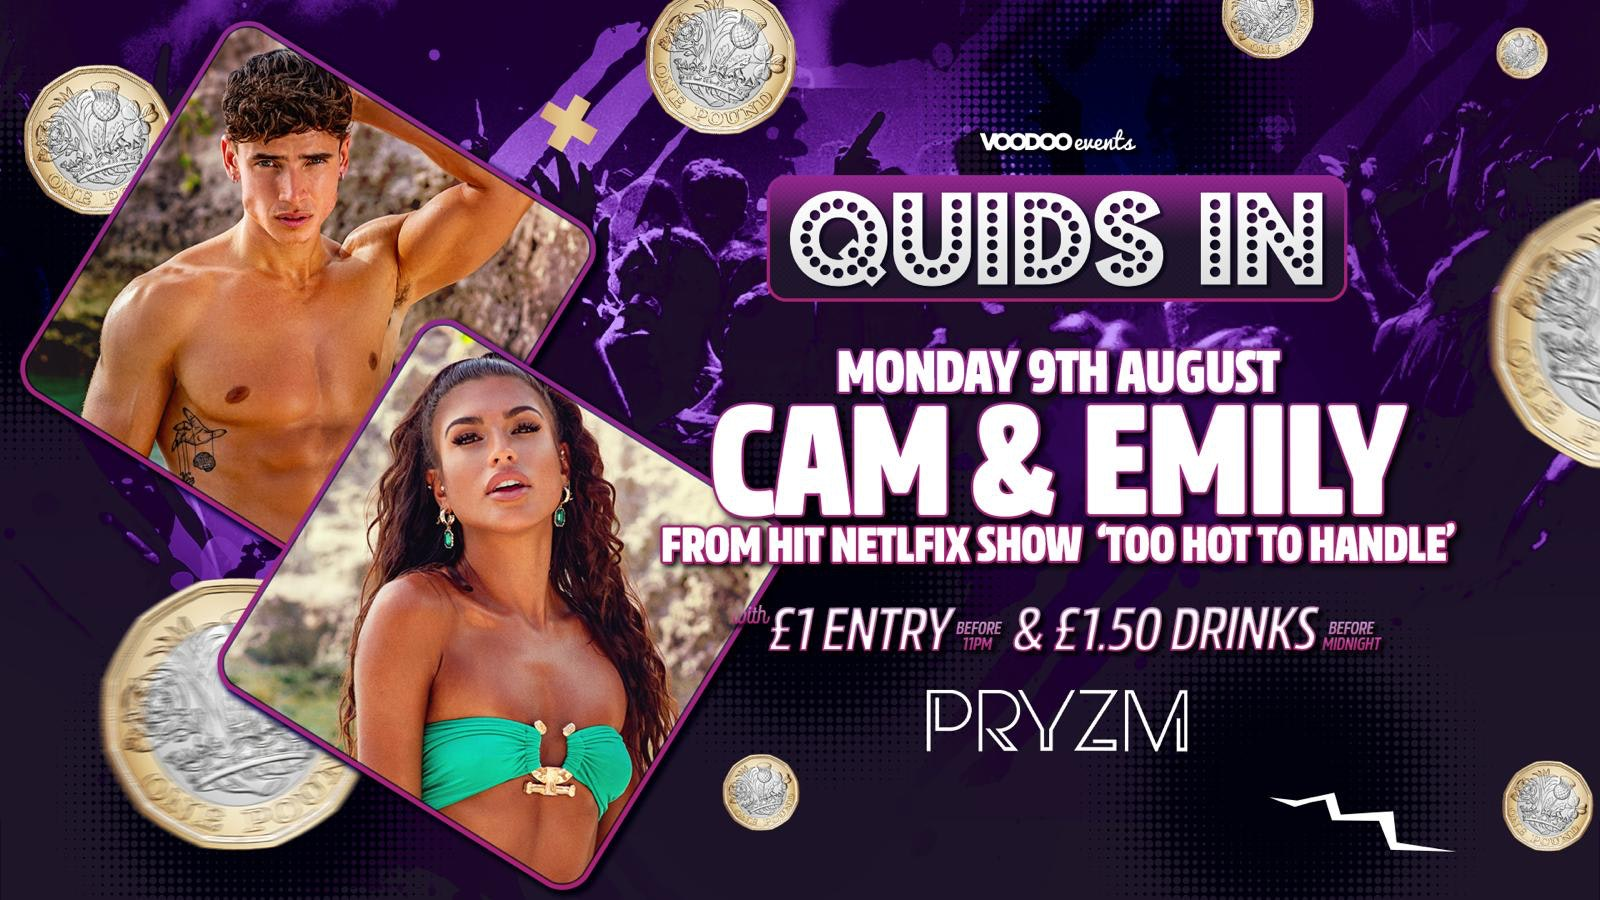 Quids In Mondays at PRYZM Presents Cam & Emily from To Hot To Handle – 9th August